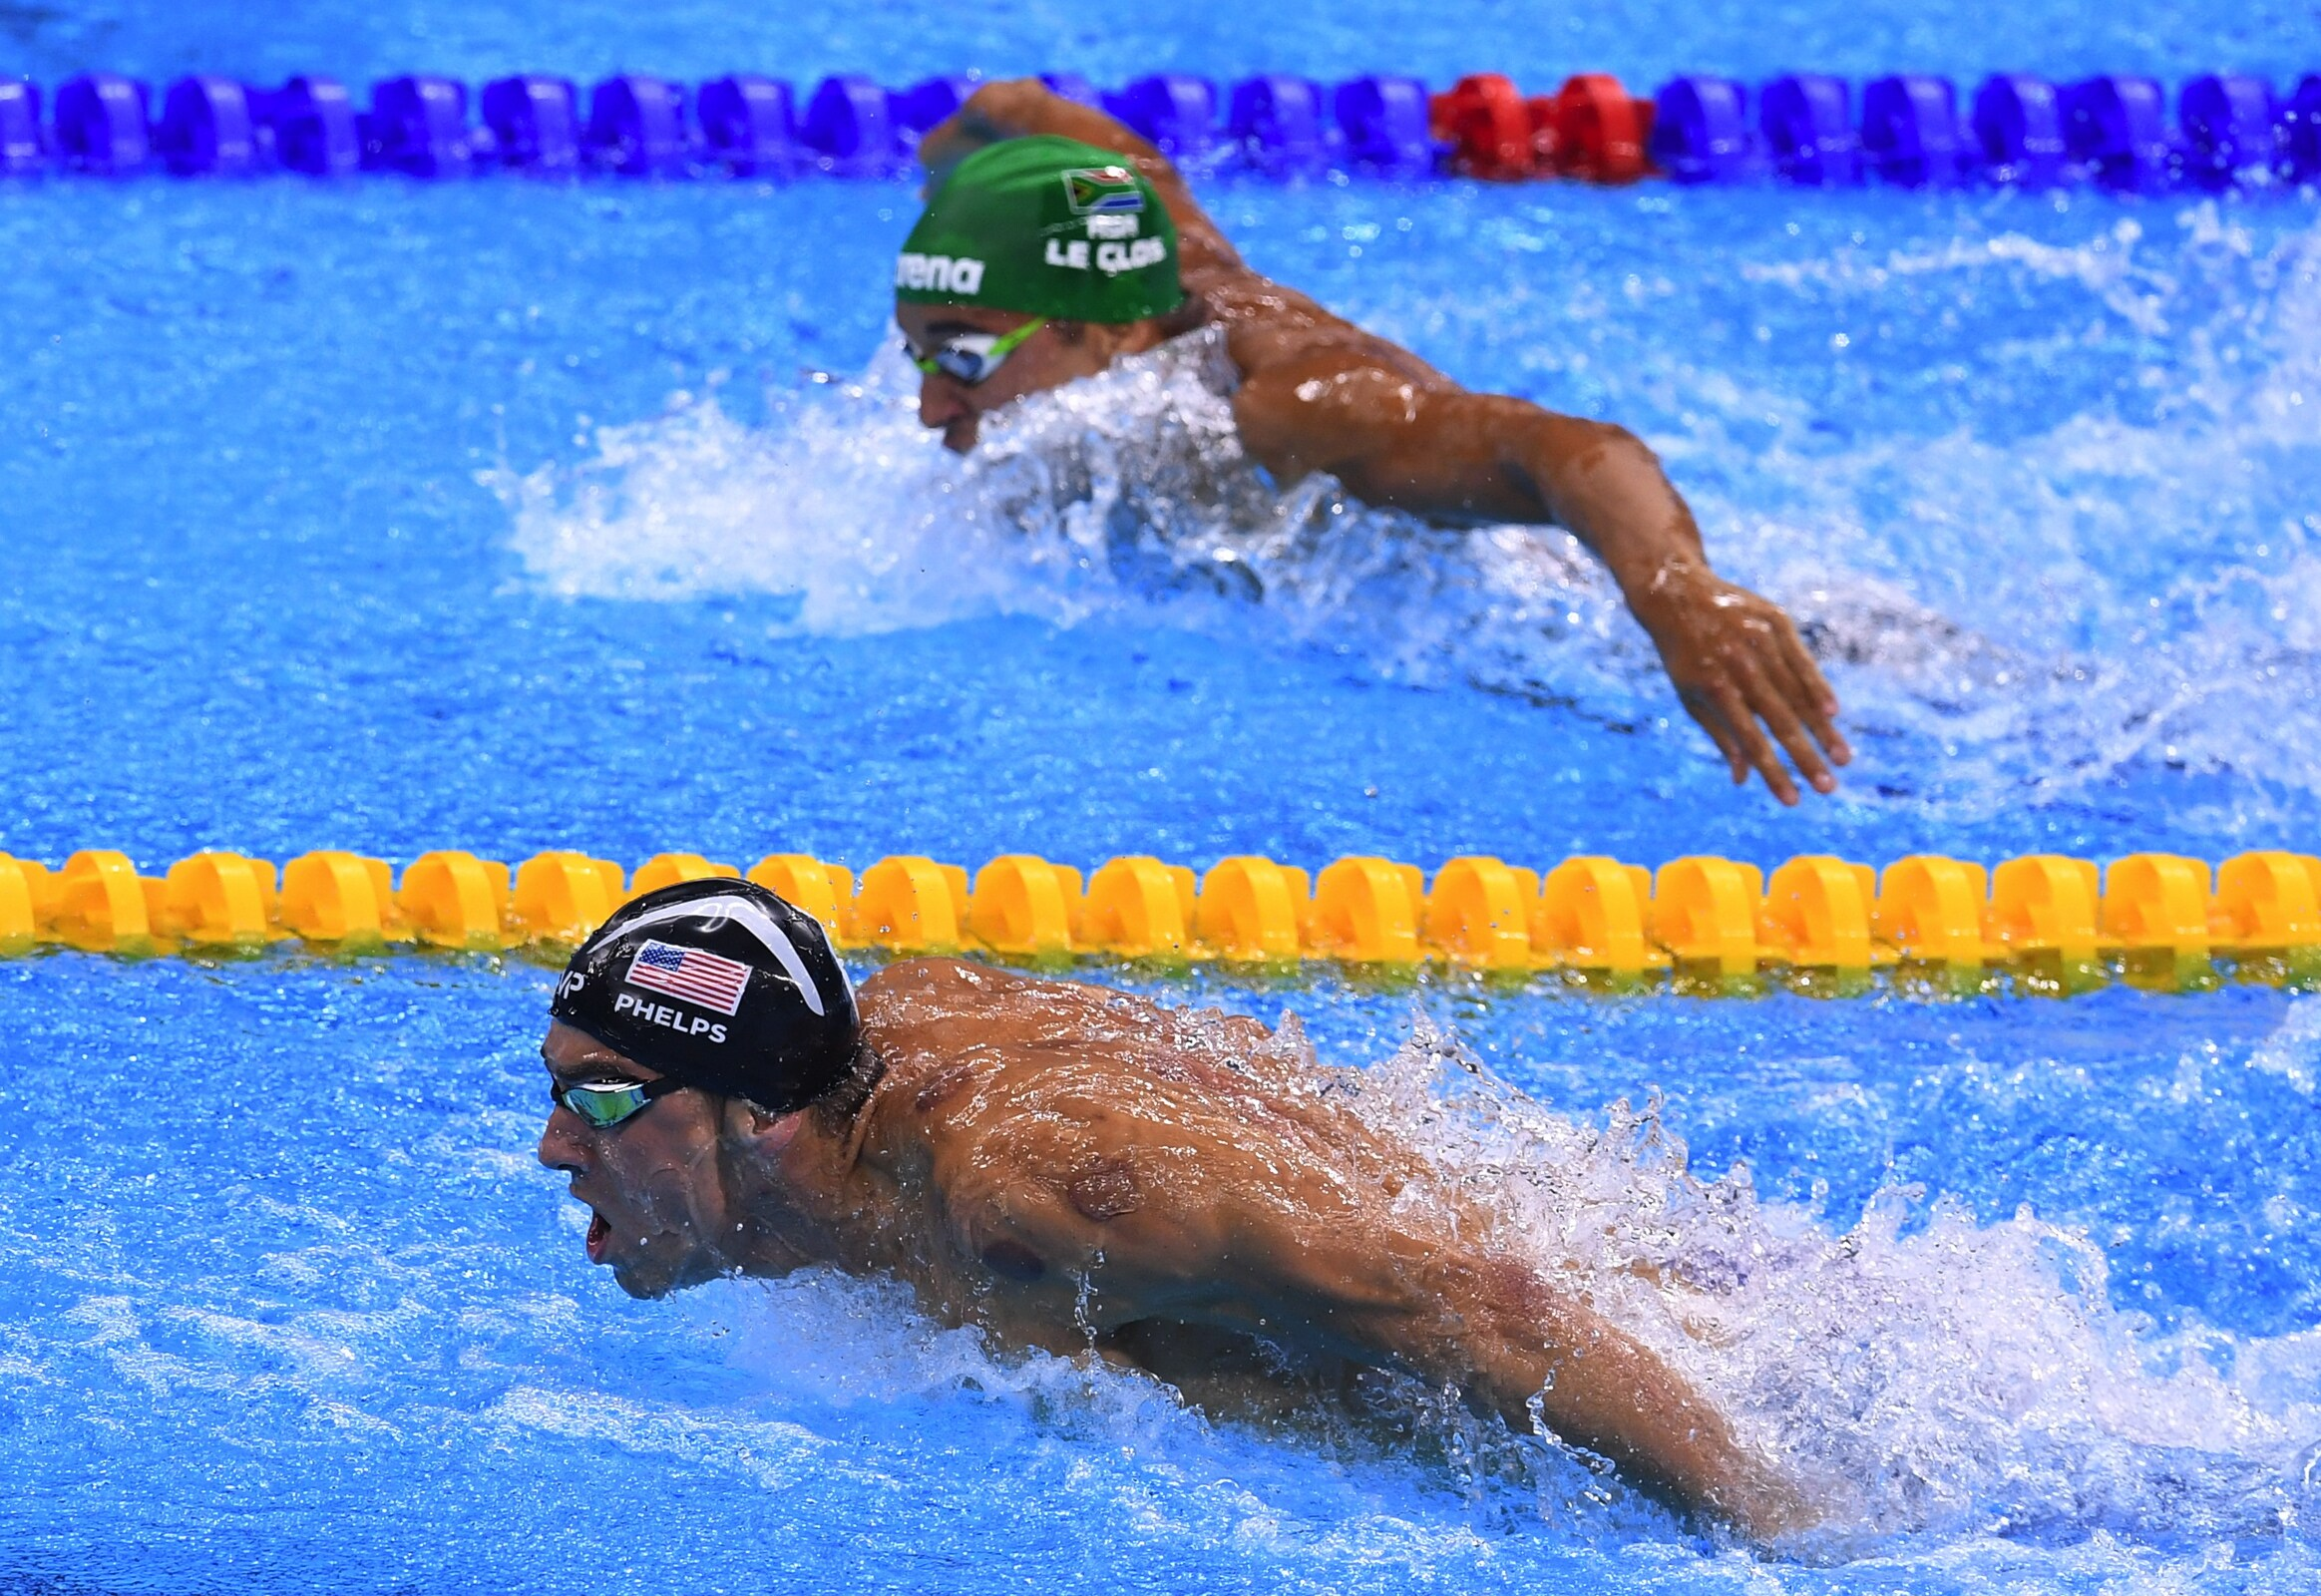 4x200m freestyle relay men - Olympic Swimming